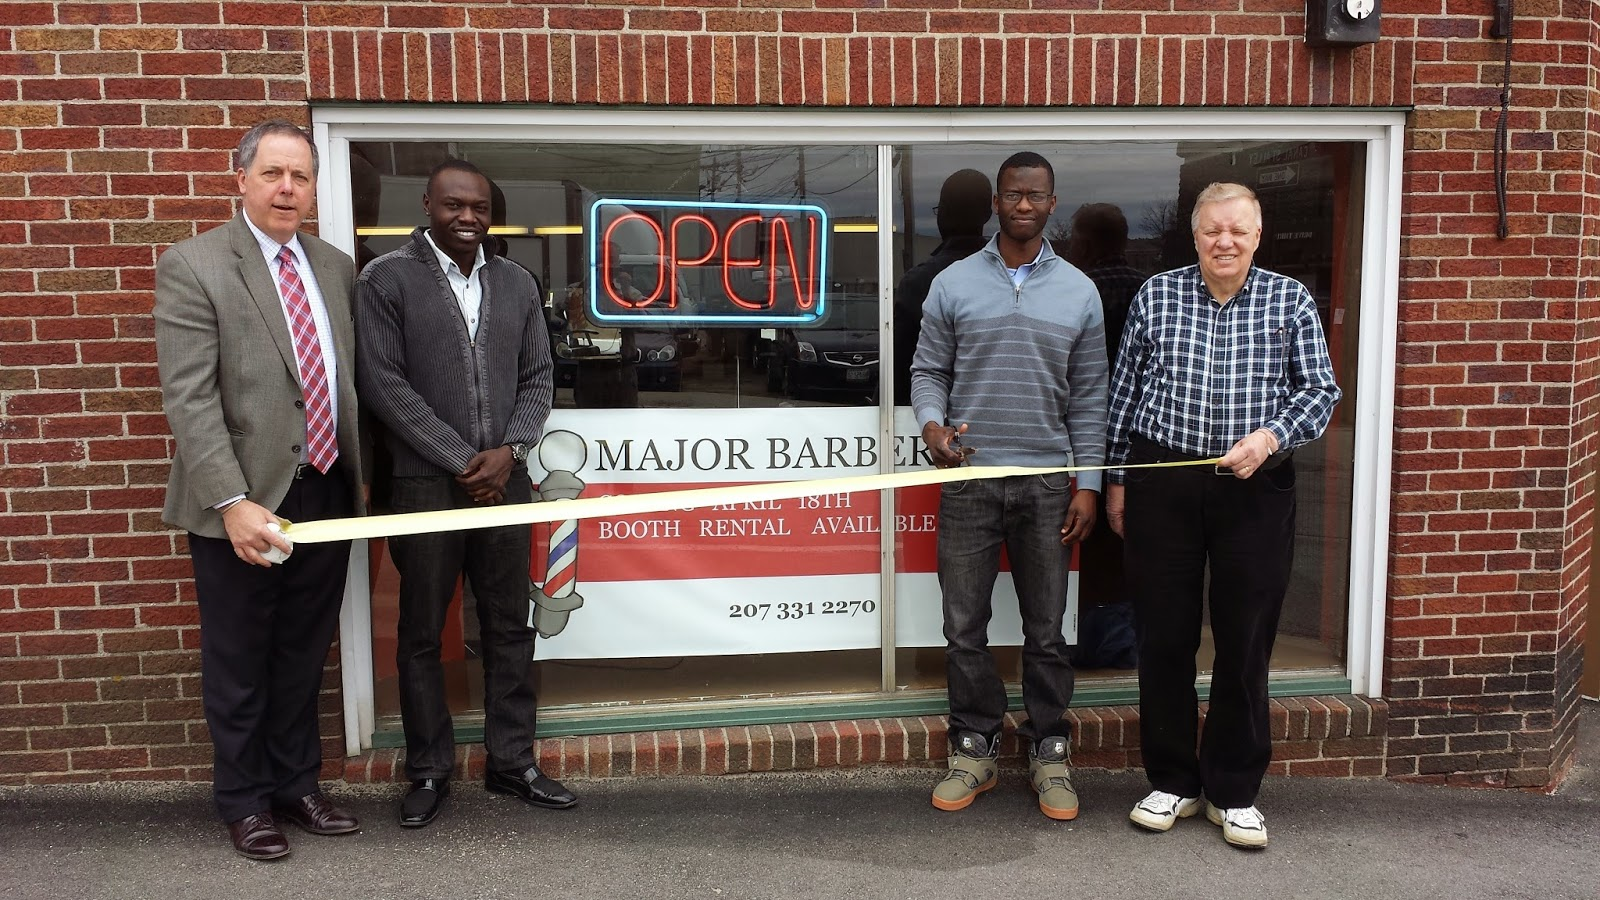 Barber Shops Open : ... News: Lewiston Mayor Enthusiastic About New Downtown Barber Shop